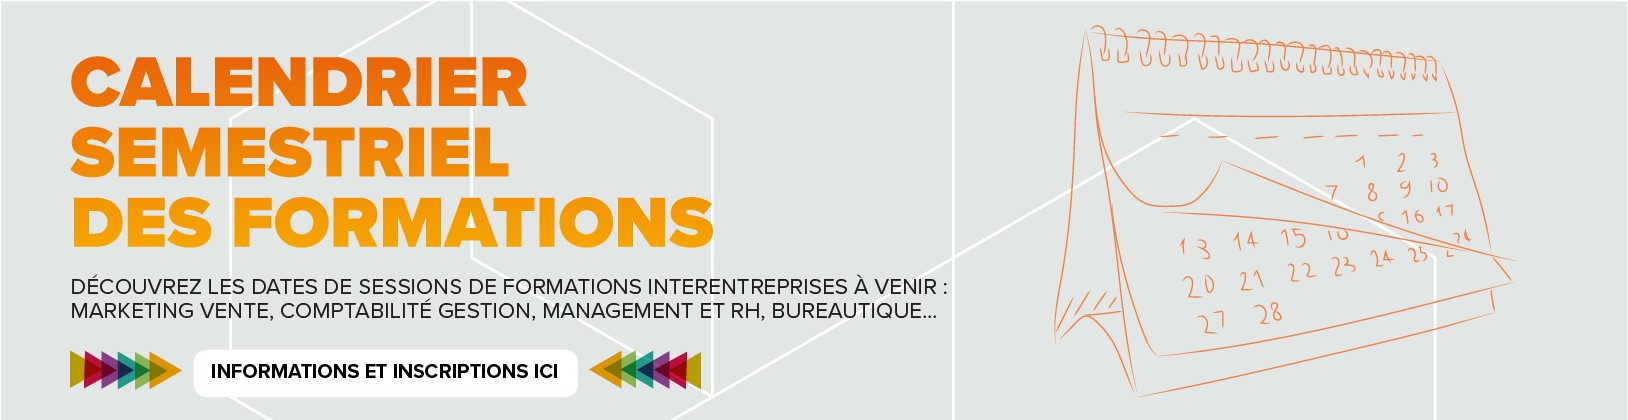 Calendrier des formations - Interfor Formation Continue